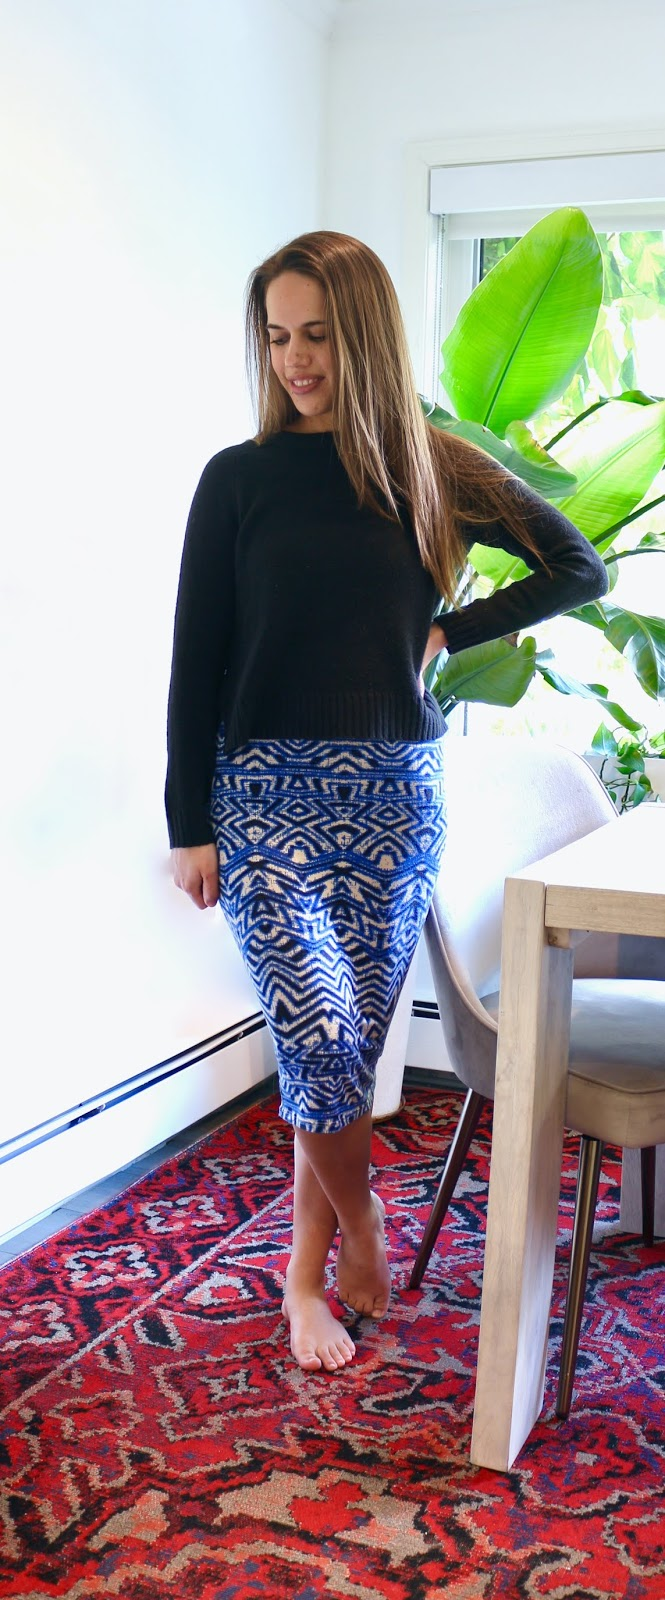 Jules in Flats - Knit Midi Skirt with Cropped Sweater (Easy Work from Home Outfit)